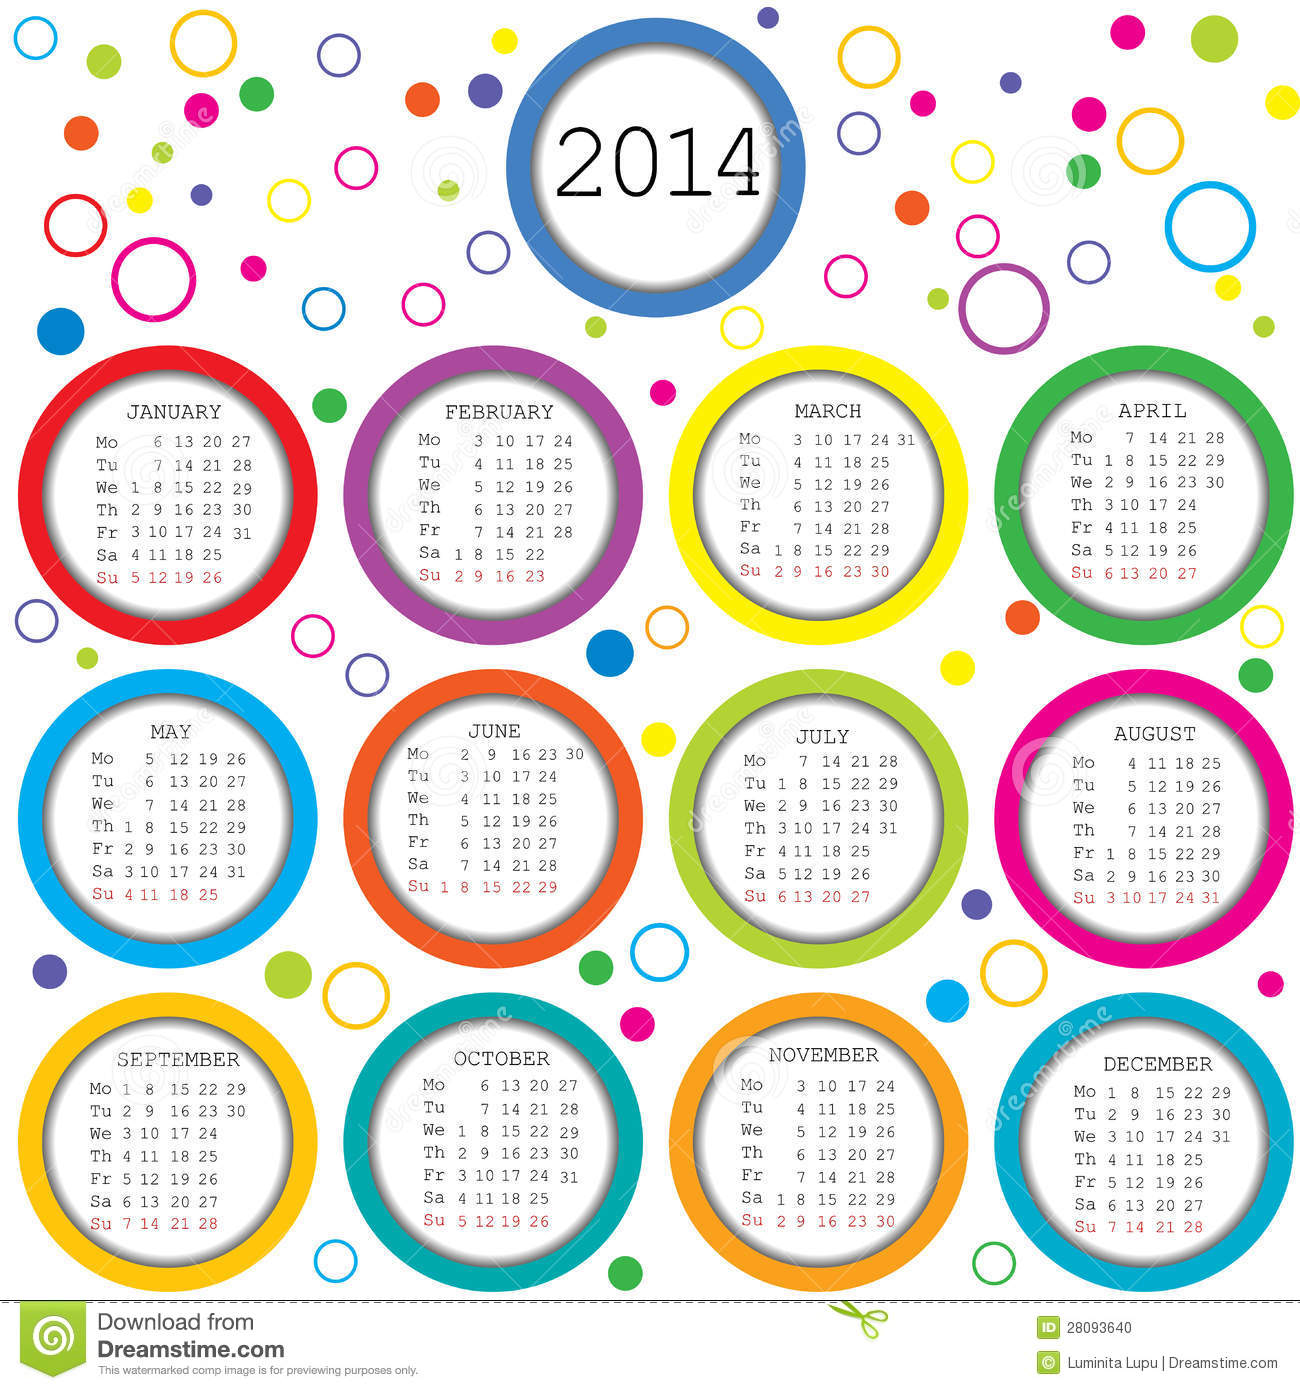 Colored circles and dots 2014 calendar for kids.